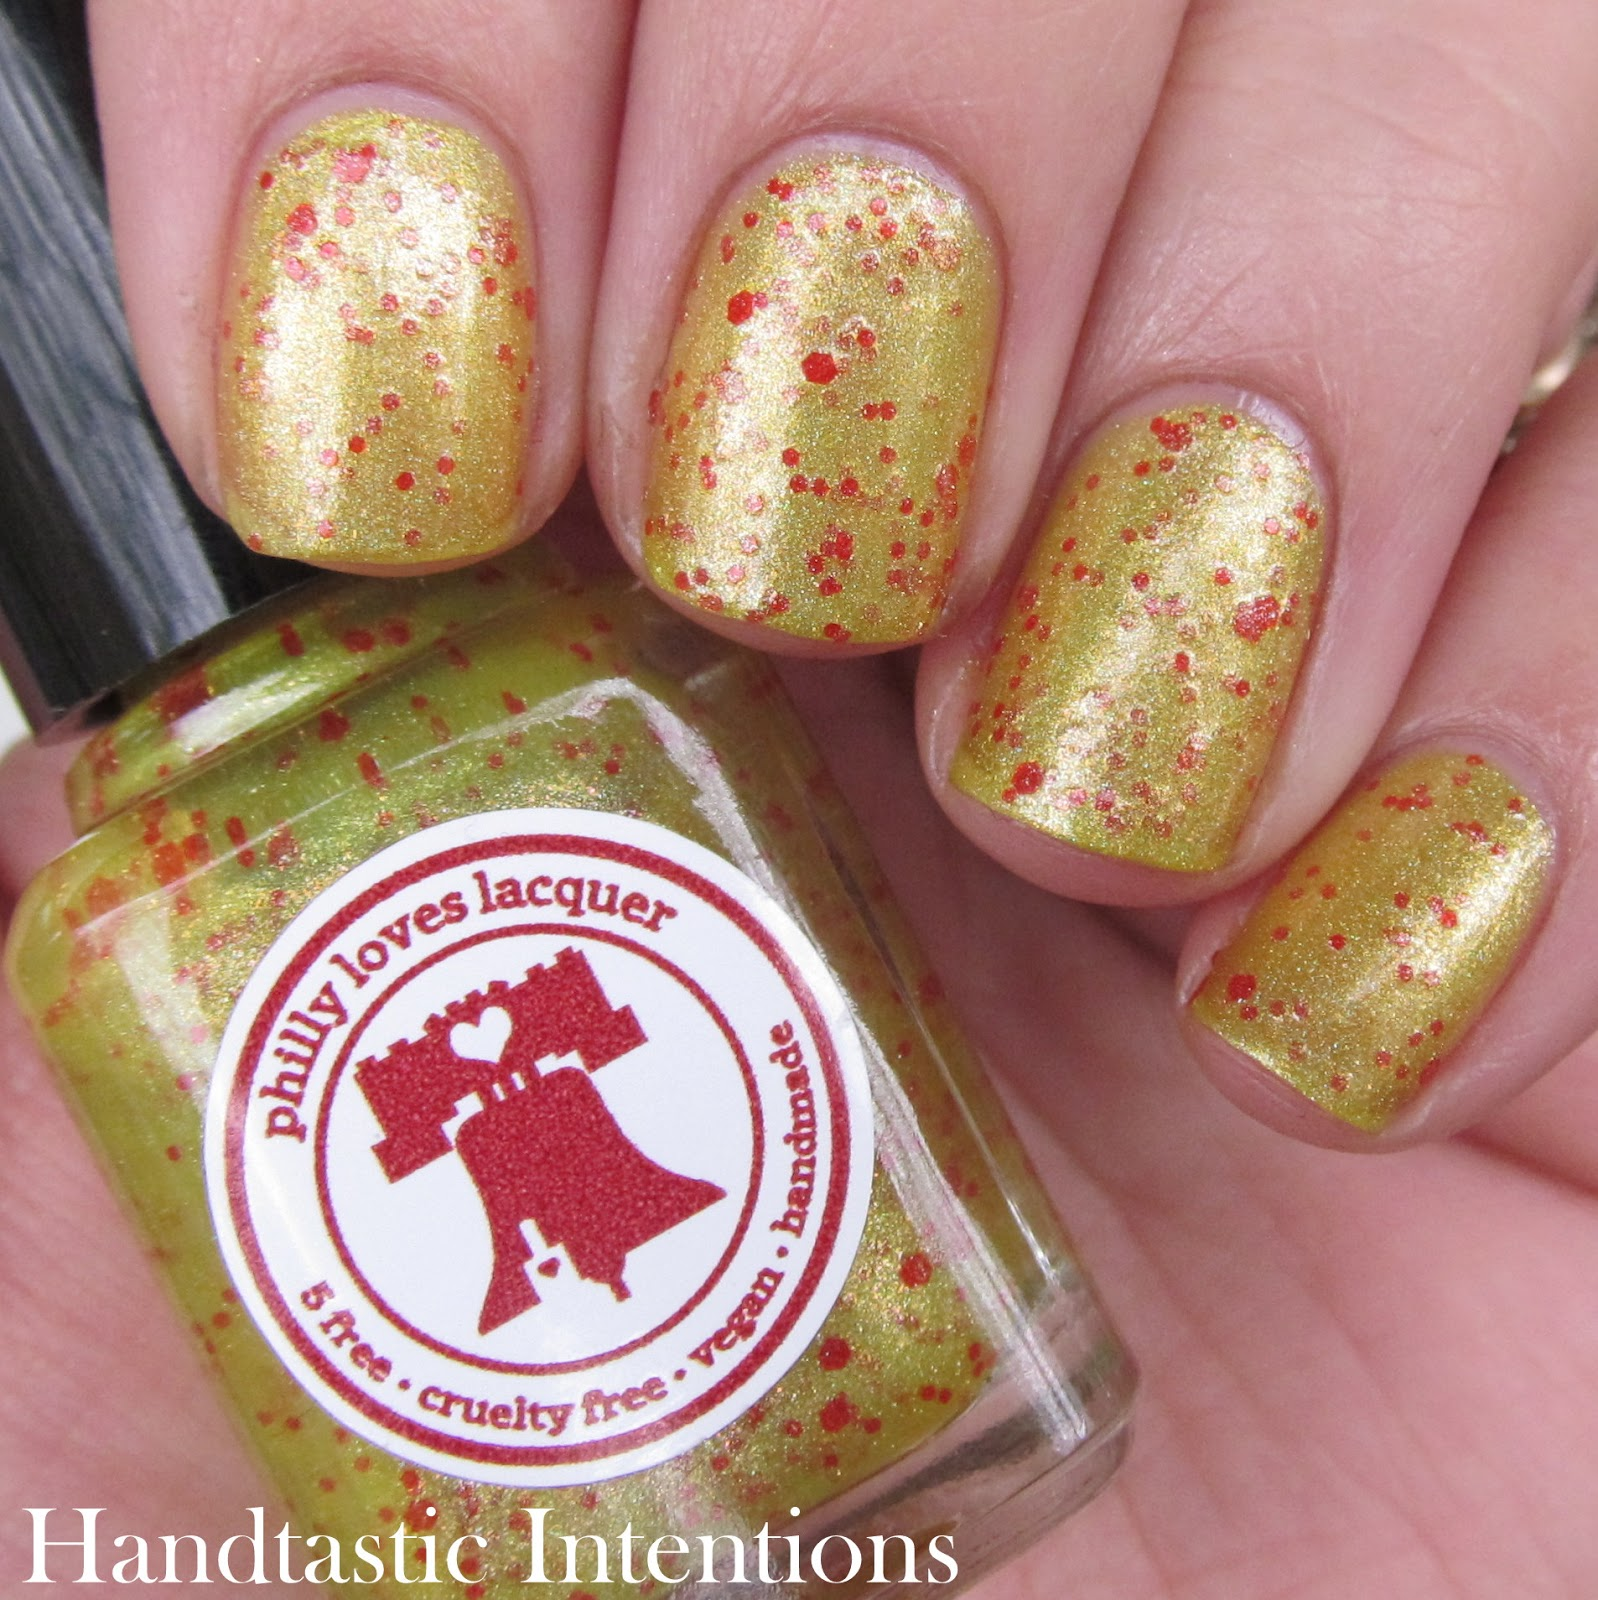 Philly-Loves-Lacquer-Dennys-An-American-Institution-Swatch